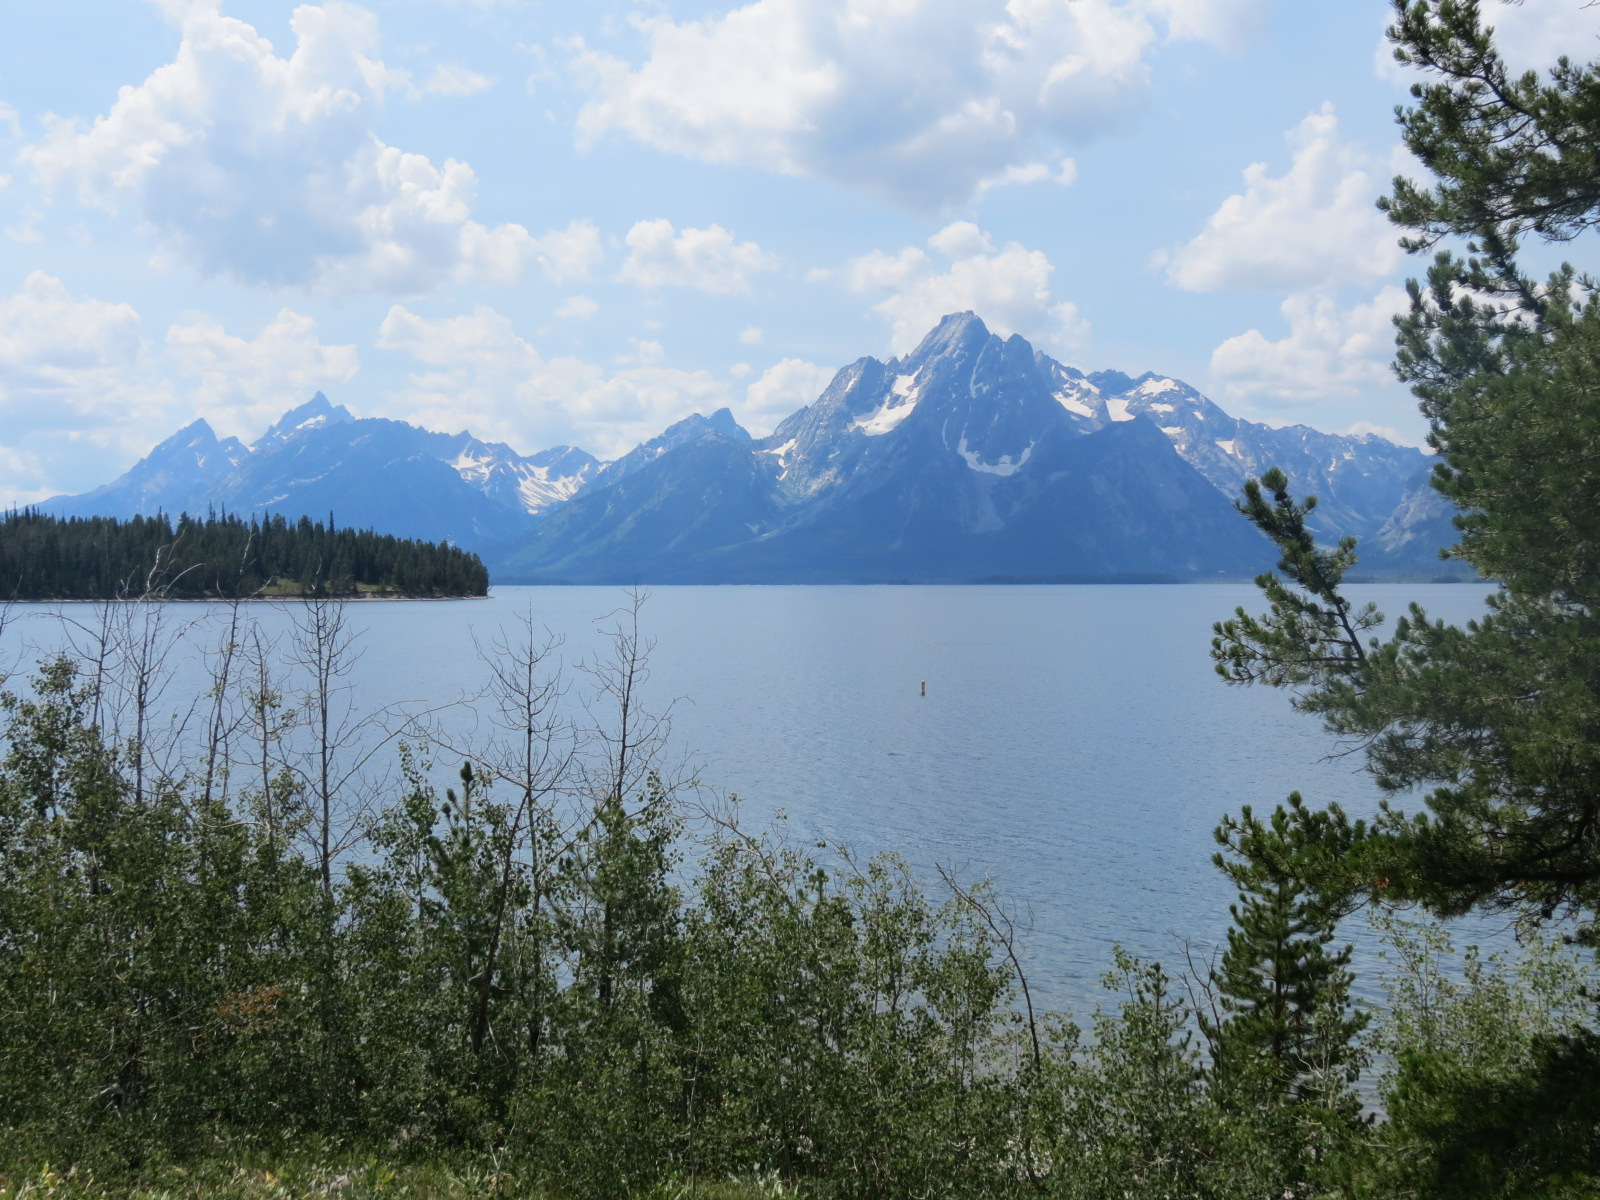 The Teton Mountains with snow in August!